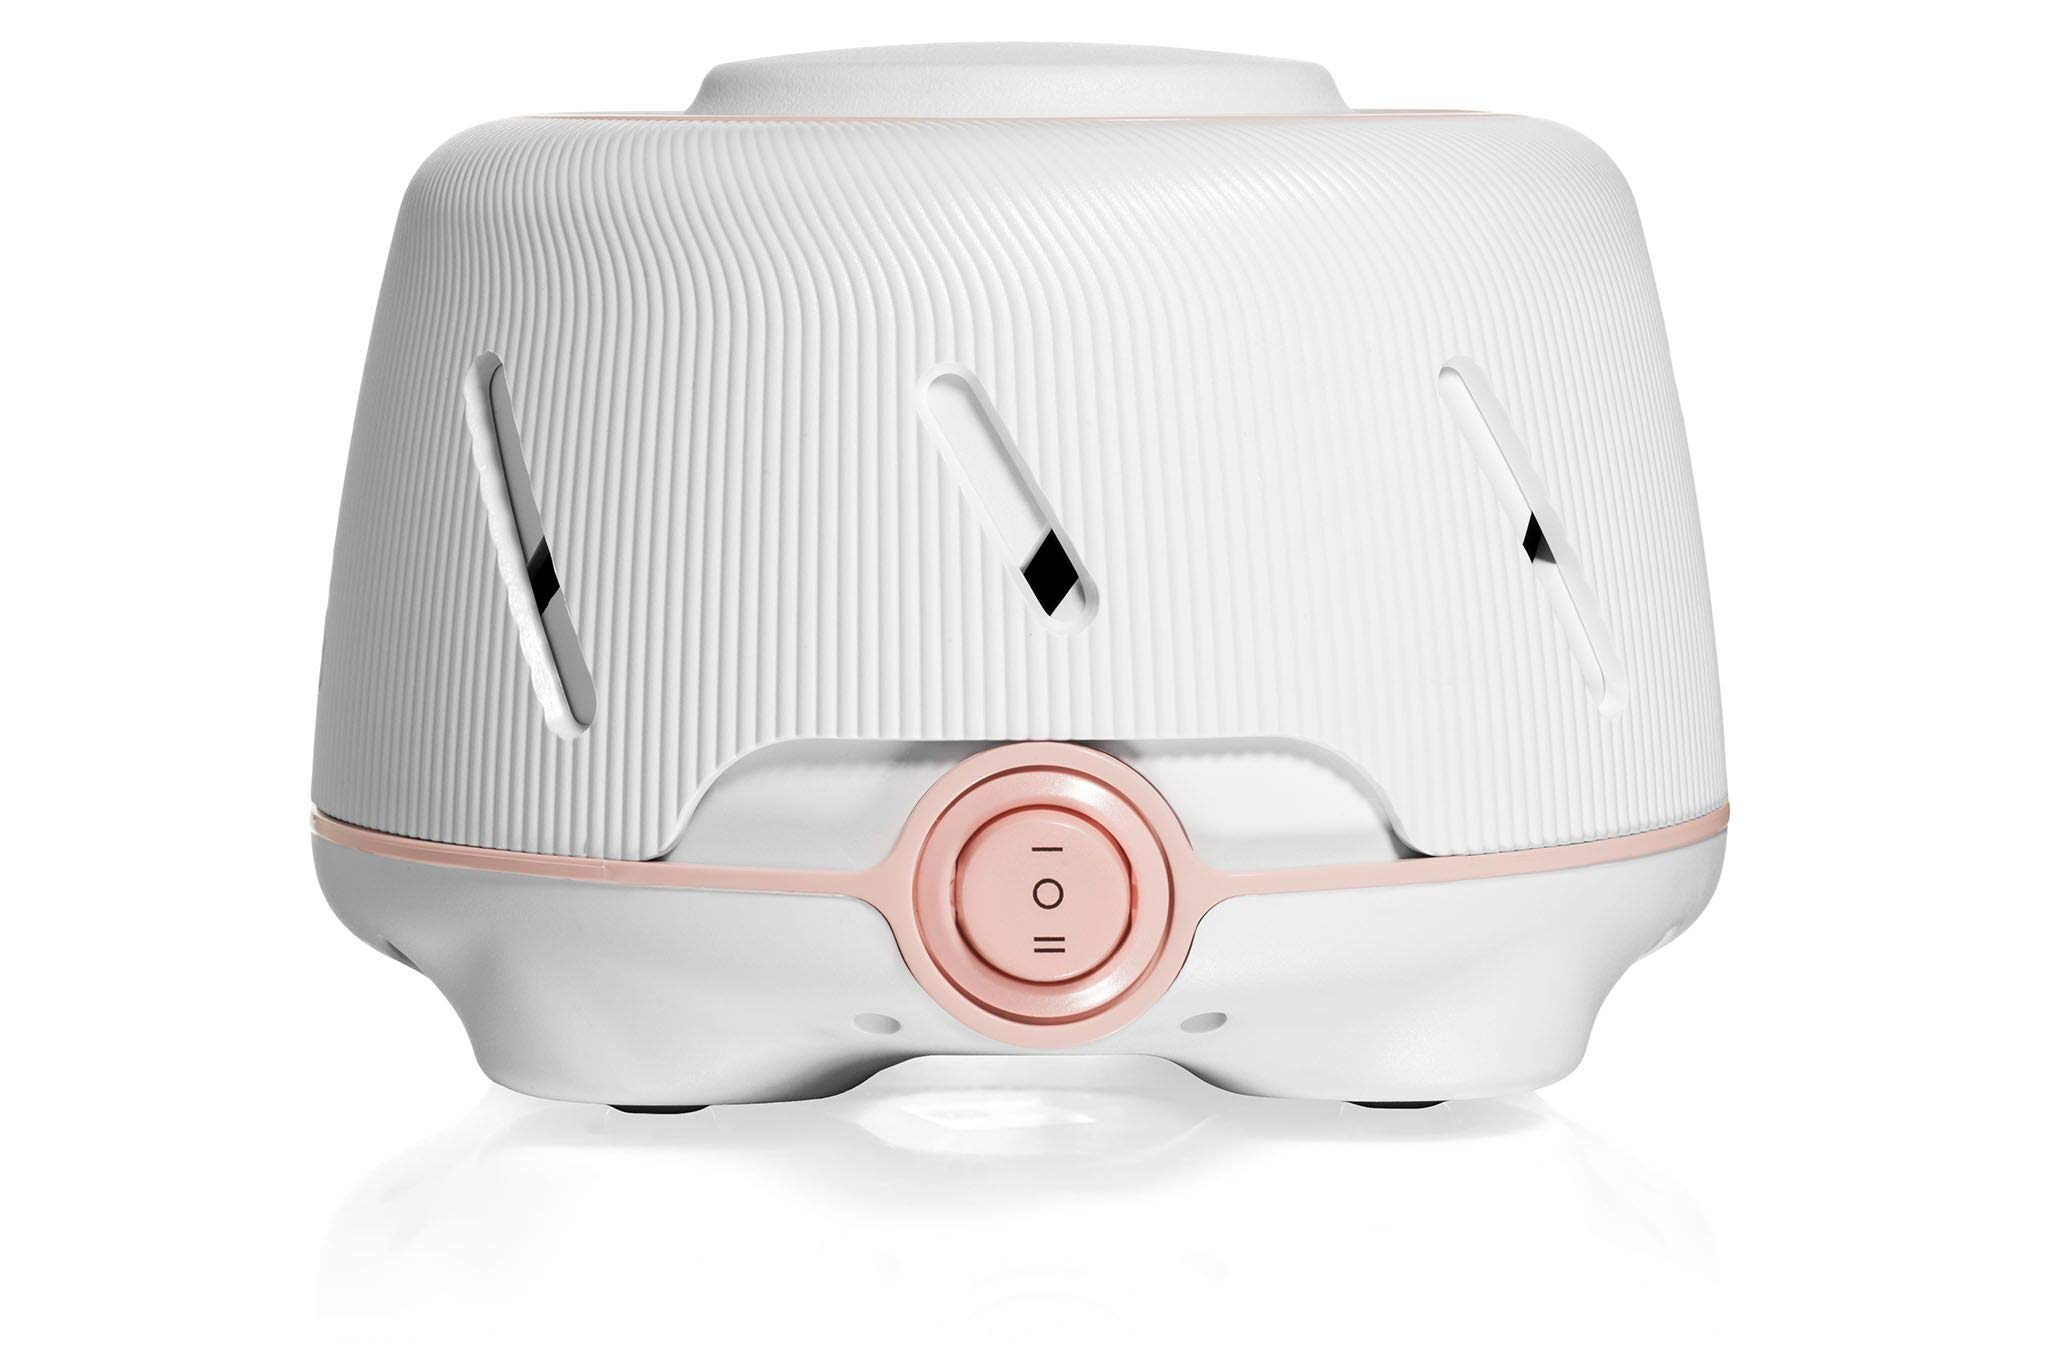 Marpac Dohm (White/Pink) | The Original White Noise Machine | Soothing Natural Sound from a Real Fan | Noise Cancelling | Sleep Therapy, Office Privacy, Travel | For Adults & Baby | 101 Night Trial by Marpac